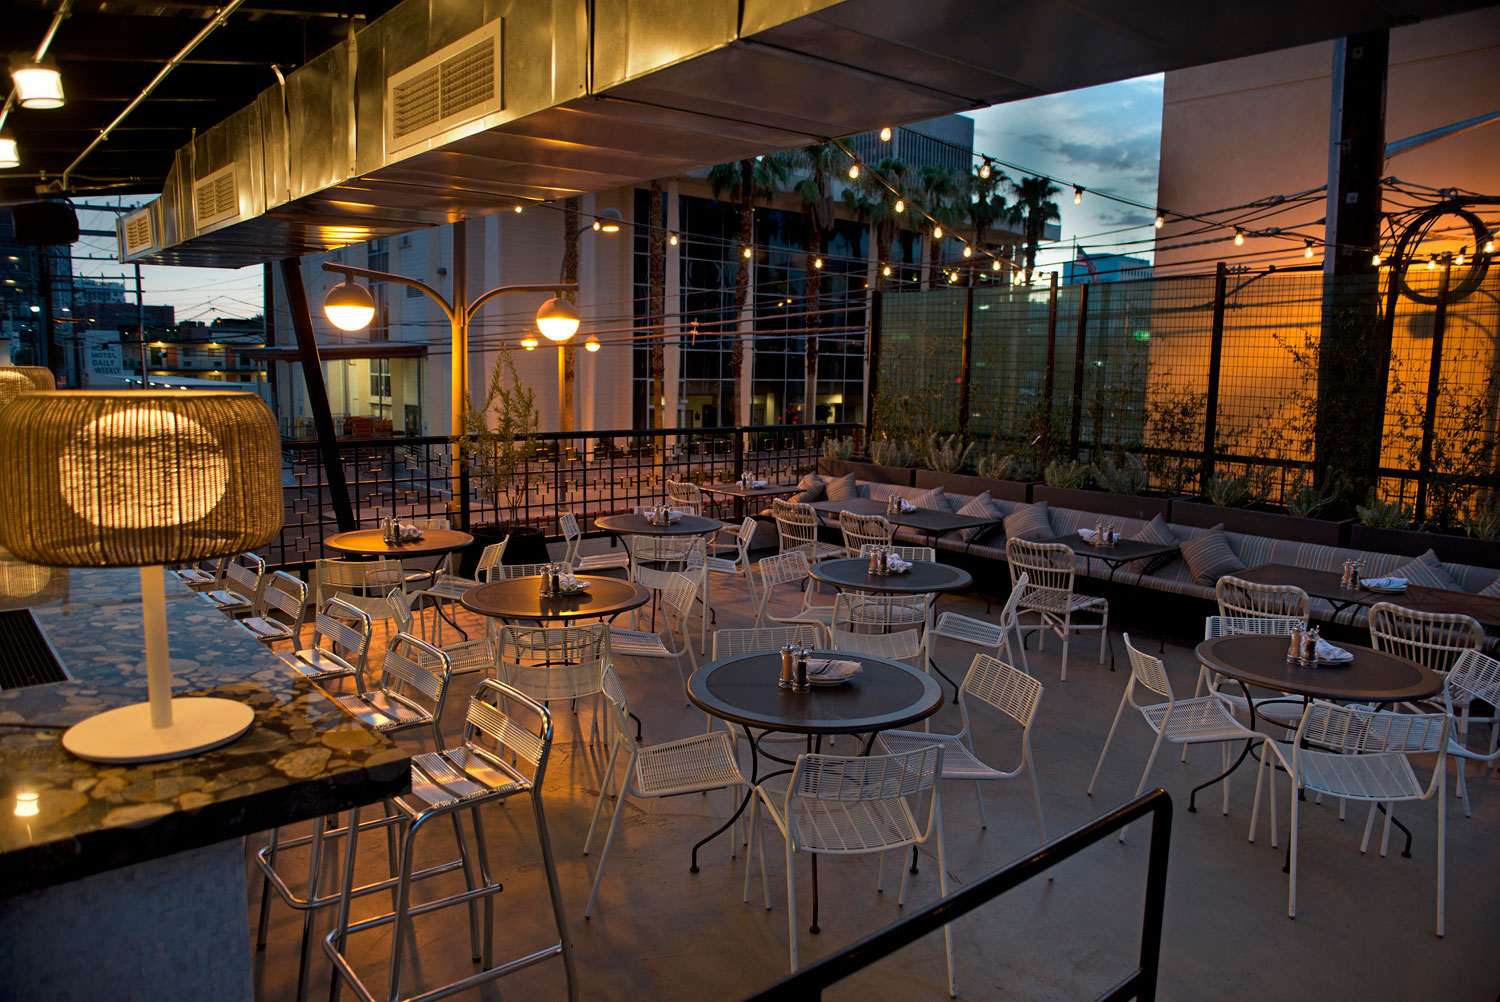 39 tis the season for outdoor dining in vegas las vegas blogs for Best outdoor dining